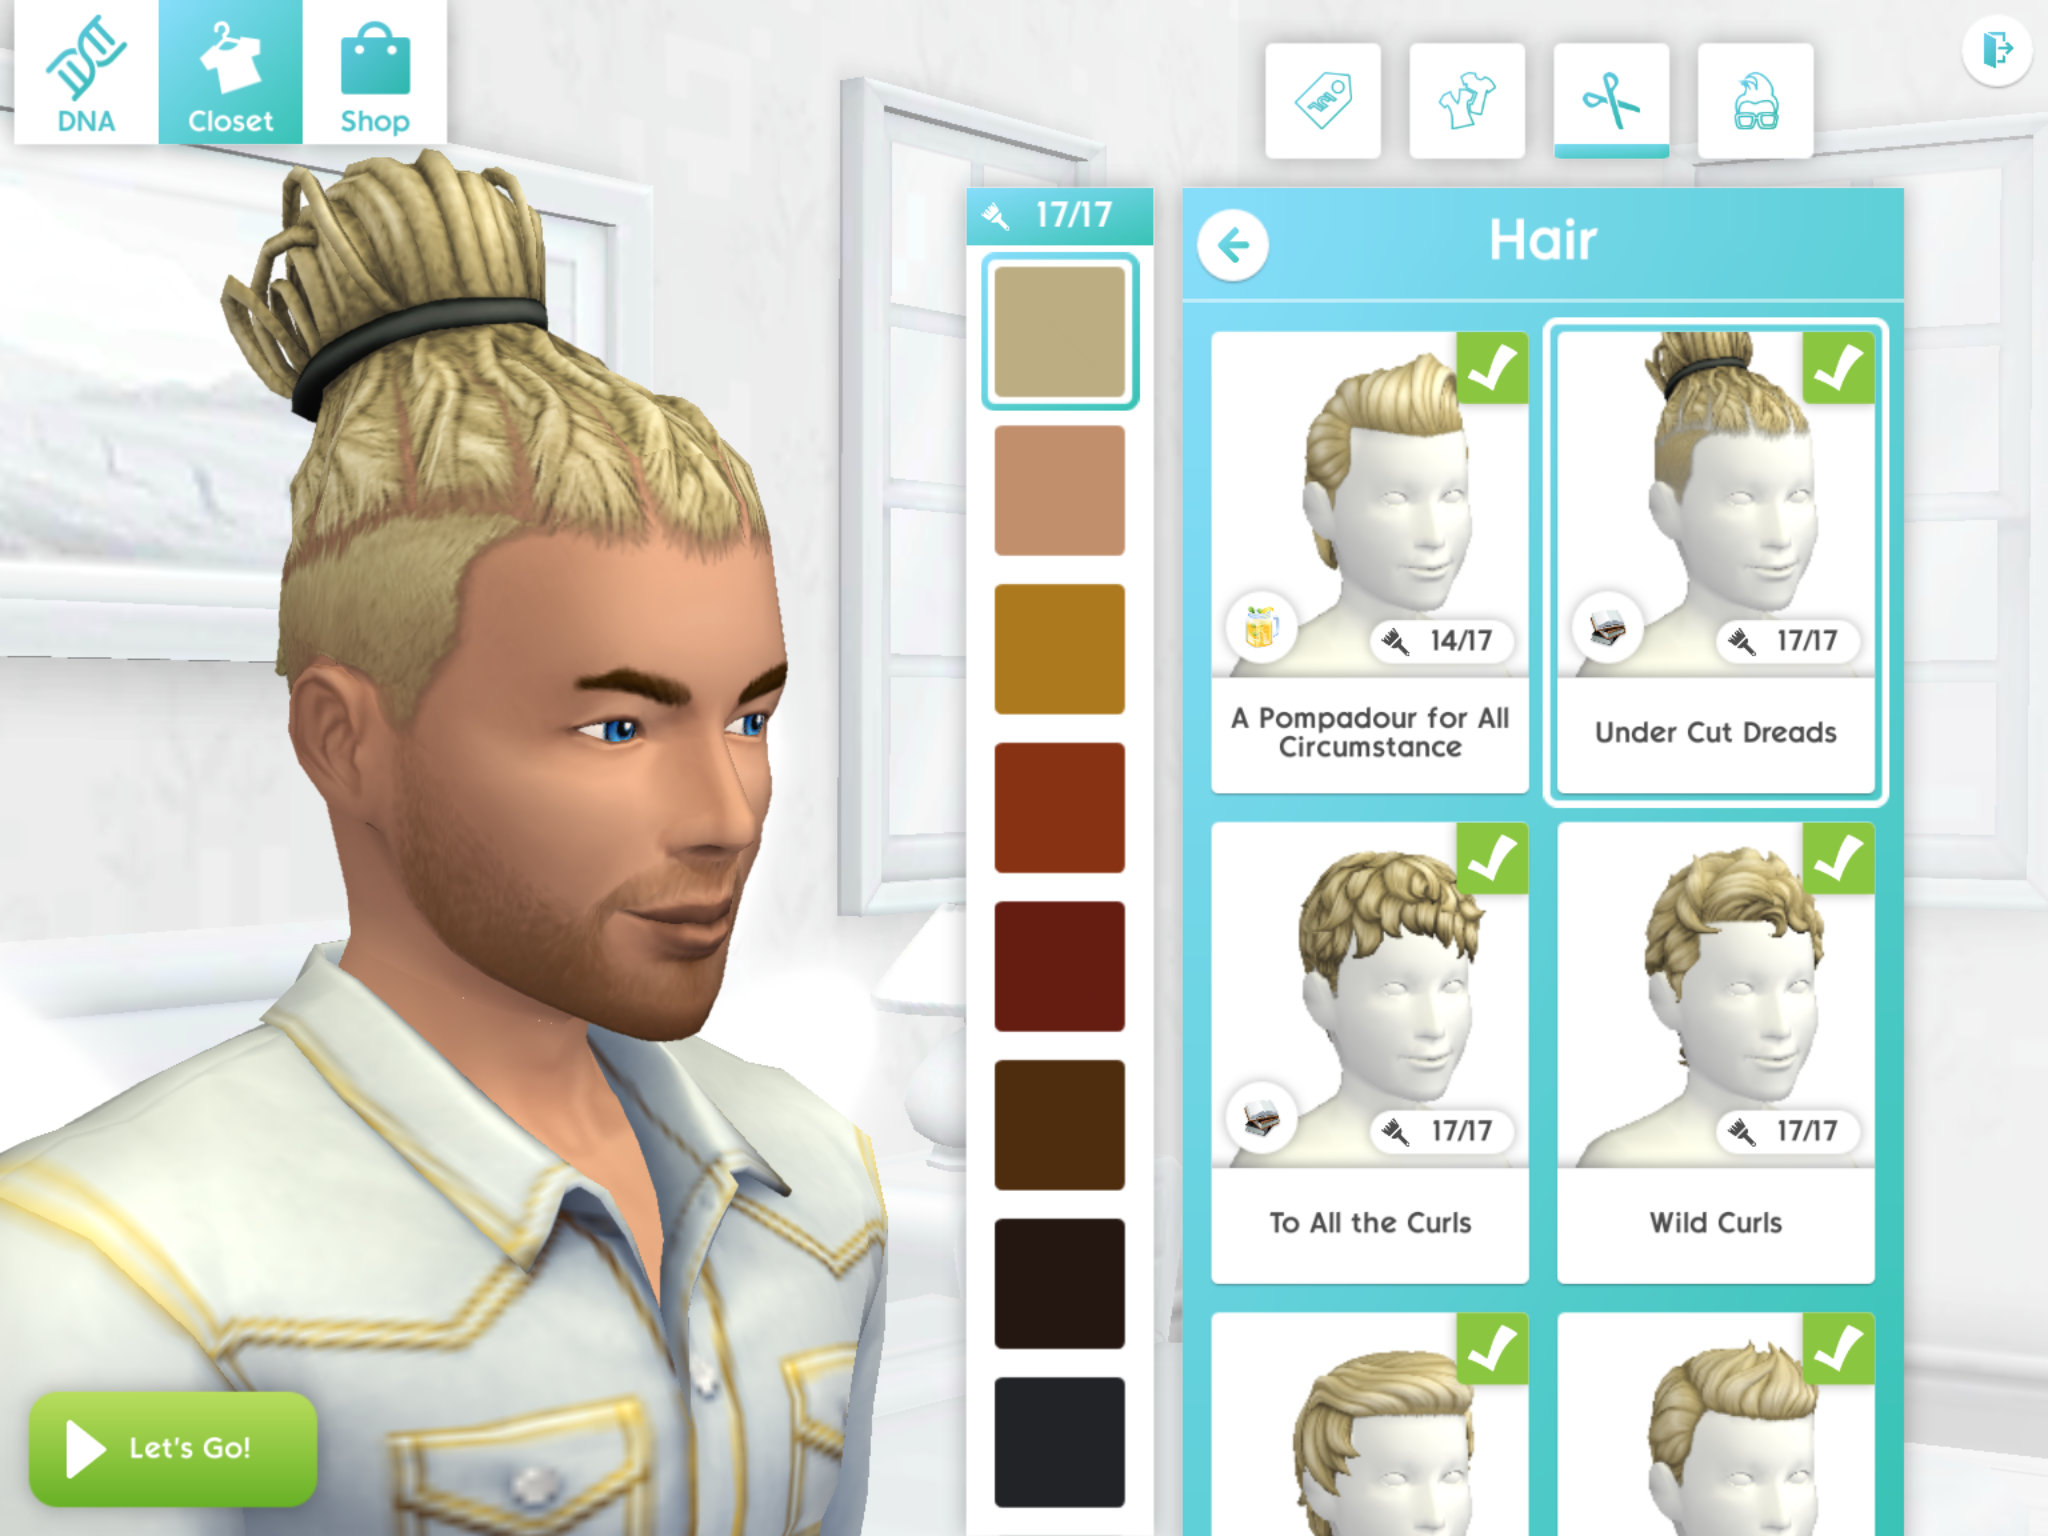 The Sims_2019-04-30-19-39-22.png